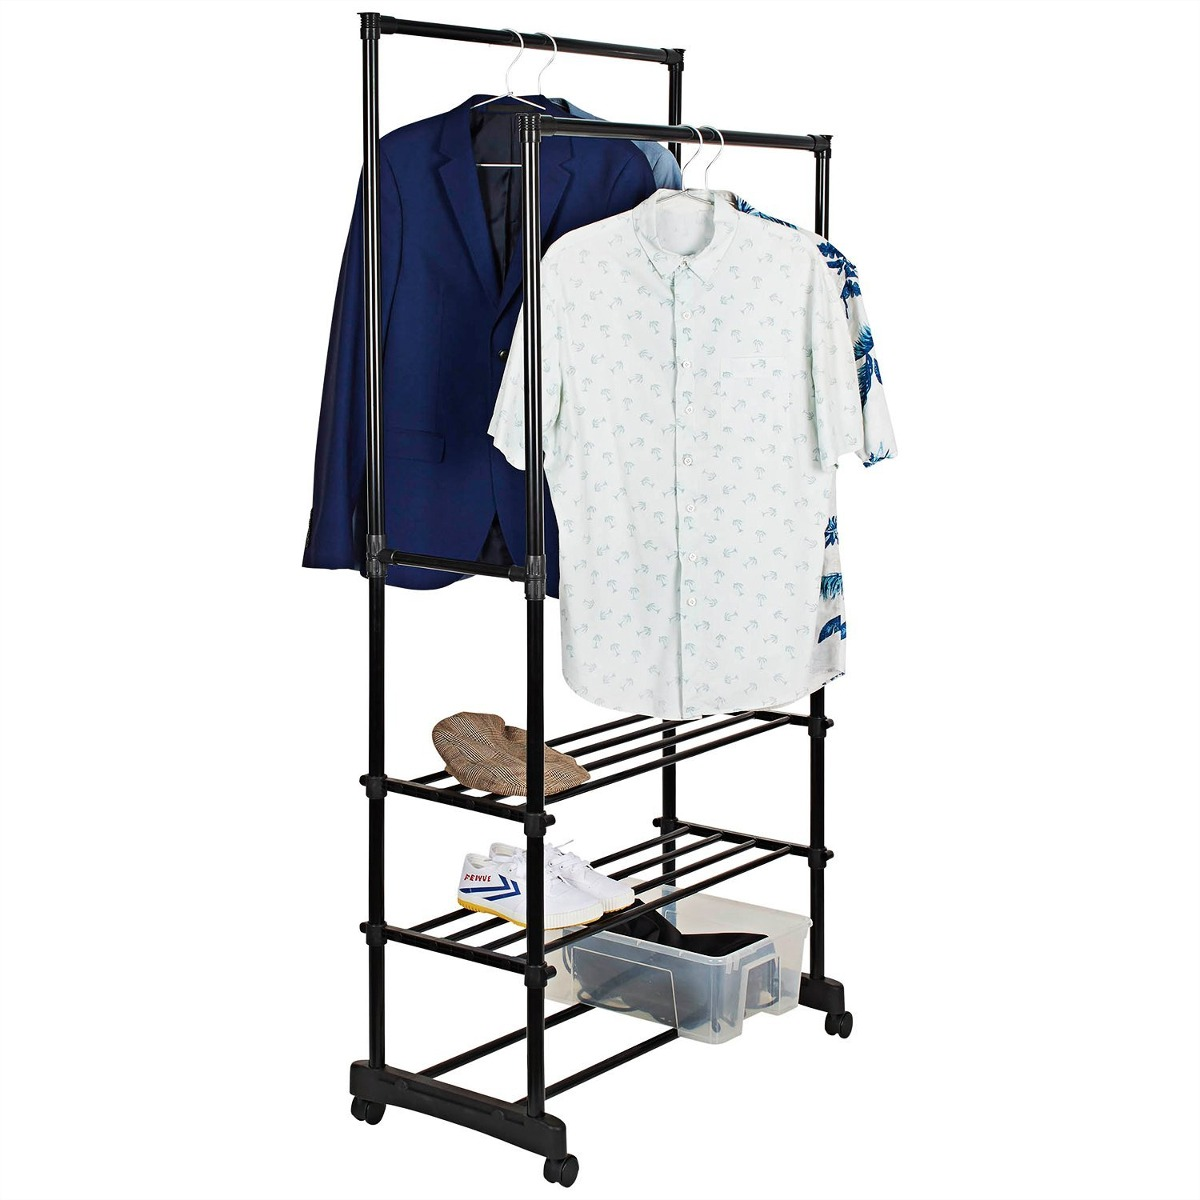 Double Rod Portable Garment Clothes Rack With 2 Tiers Storag Cargando Zoom